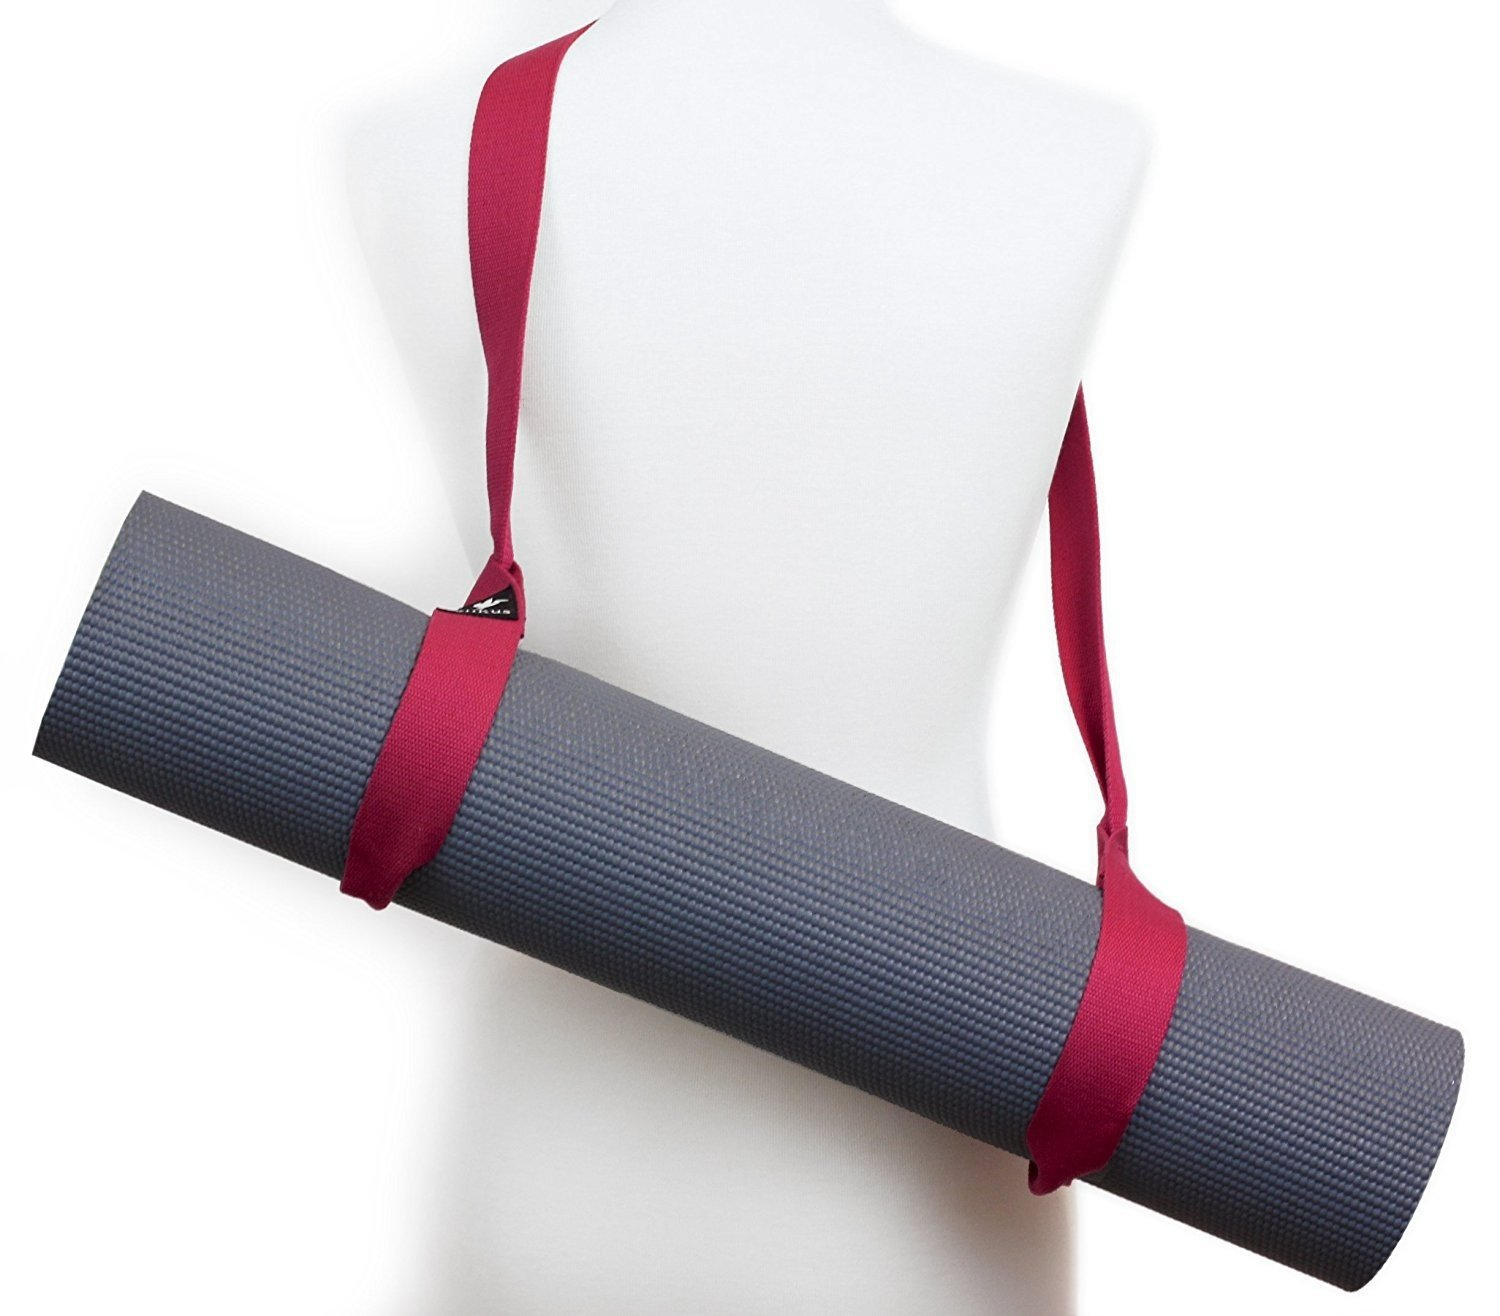 Amazon.com : Yoga Mat Carry Strap Sling - Adjustable ...